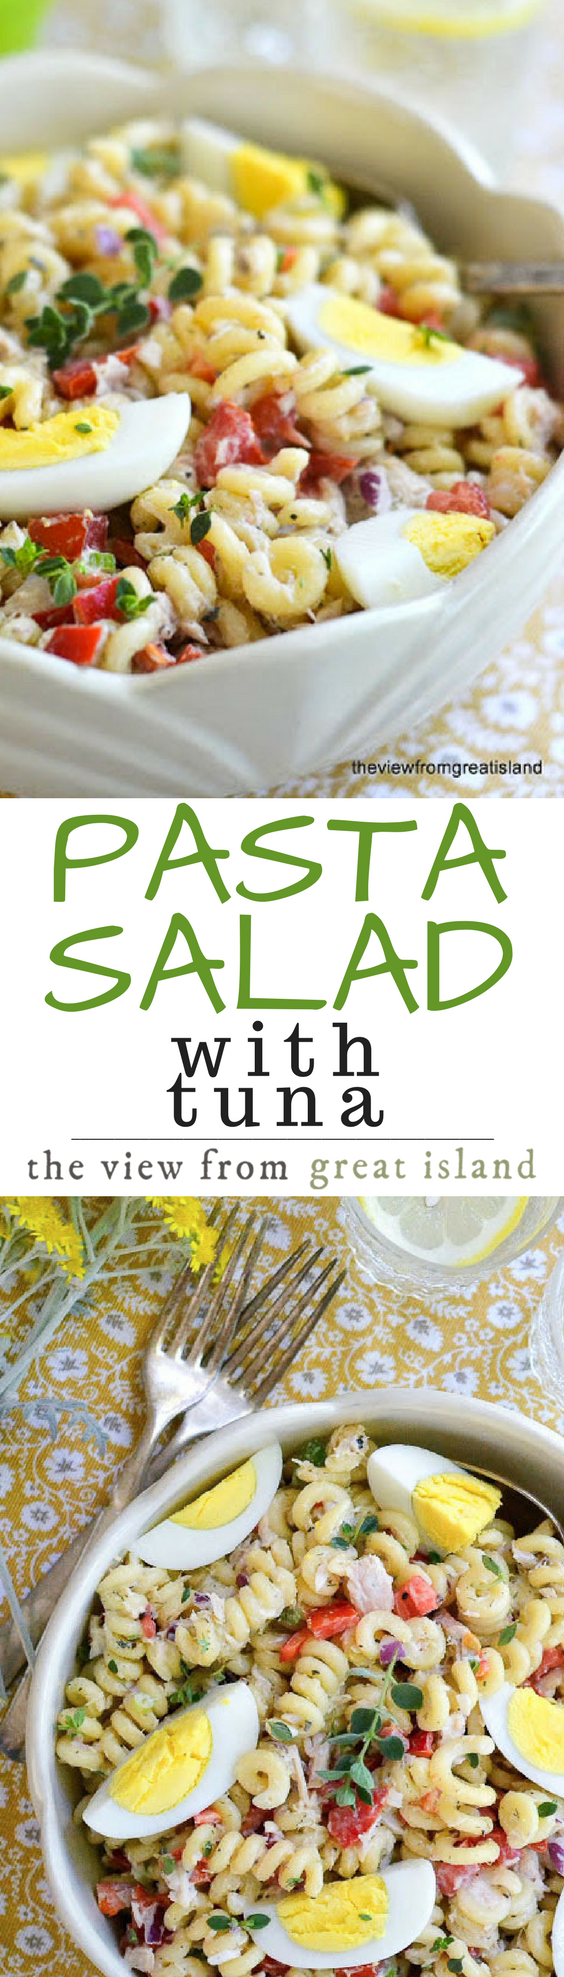 This Pasta Salad with Tuna is the one I grew up with, and it remains my favorite — it sounds simple, but the combination of flavors is addictive, and once you start eating this, you won't be able to stop! summer #tuna #tunasalad #pasta #pastasalad #picnicsalad #macaronisalad #cannedtuna #easypastasalad #fish #meatlessmonday #30minutemeal #sidedish #meatlessmonday #potluck #cannedtuna